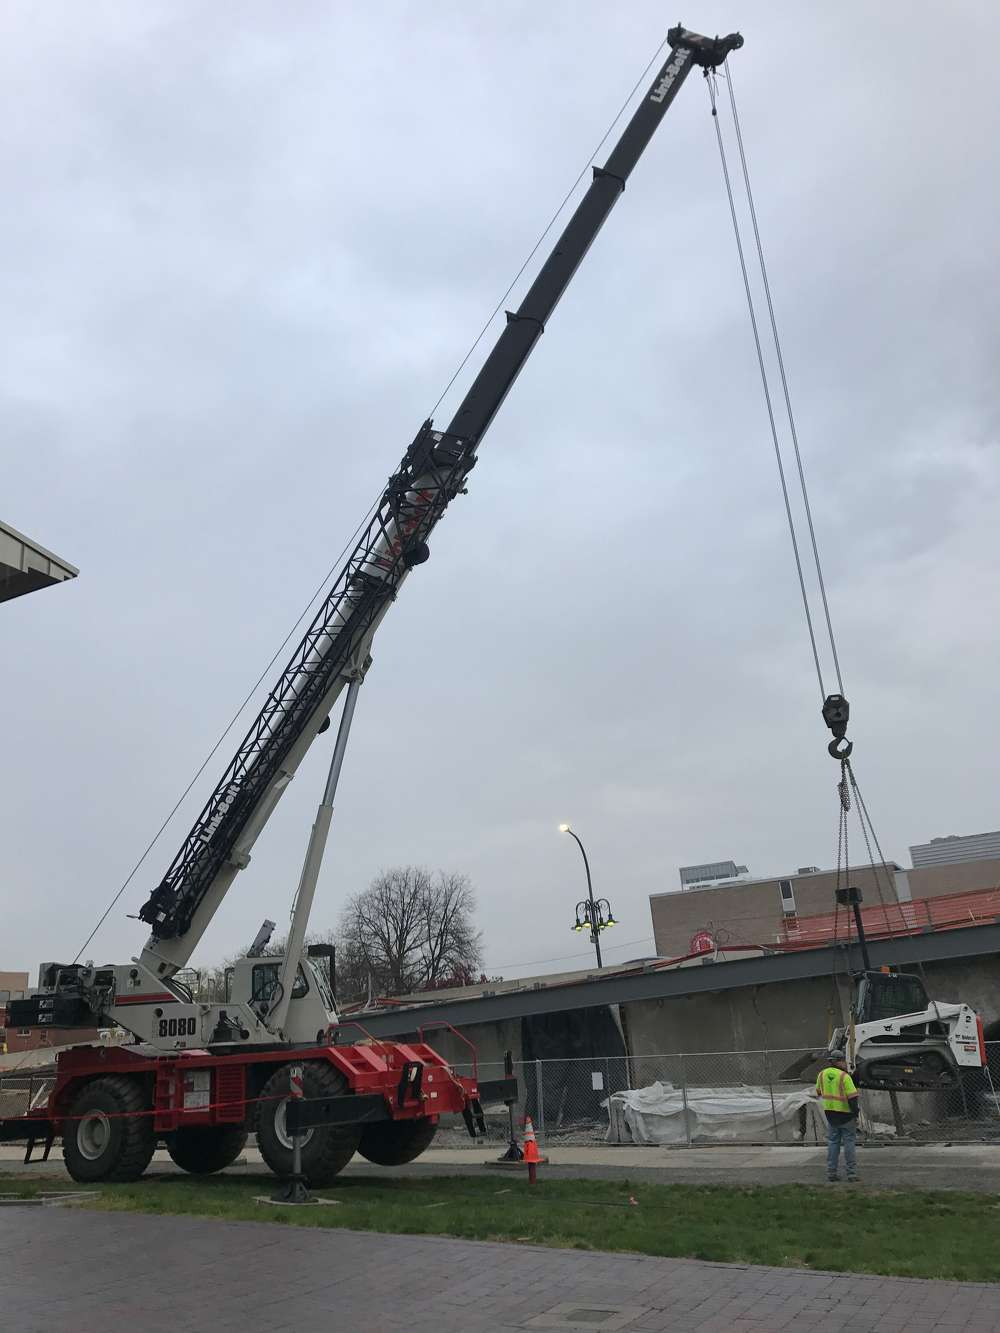 """""""Rather than a using a smaller crane of 40 to 50 ton capacity and having to bring in a larger crane from time to time, the 80 ton cranes can handle it all on some jobs,"""" said Jeff Esbin, equipment manager of J.D. Eckman Inc."""